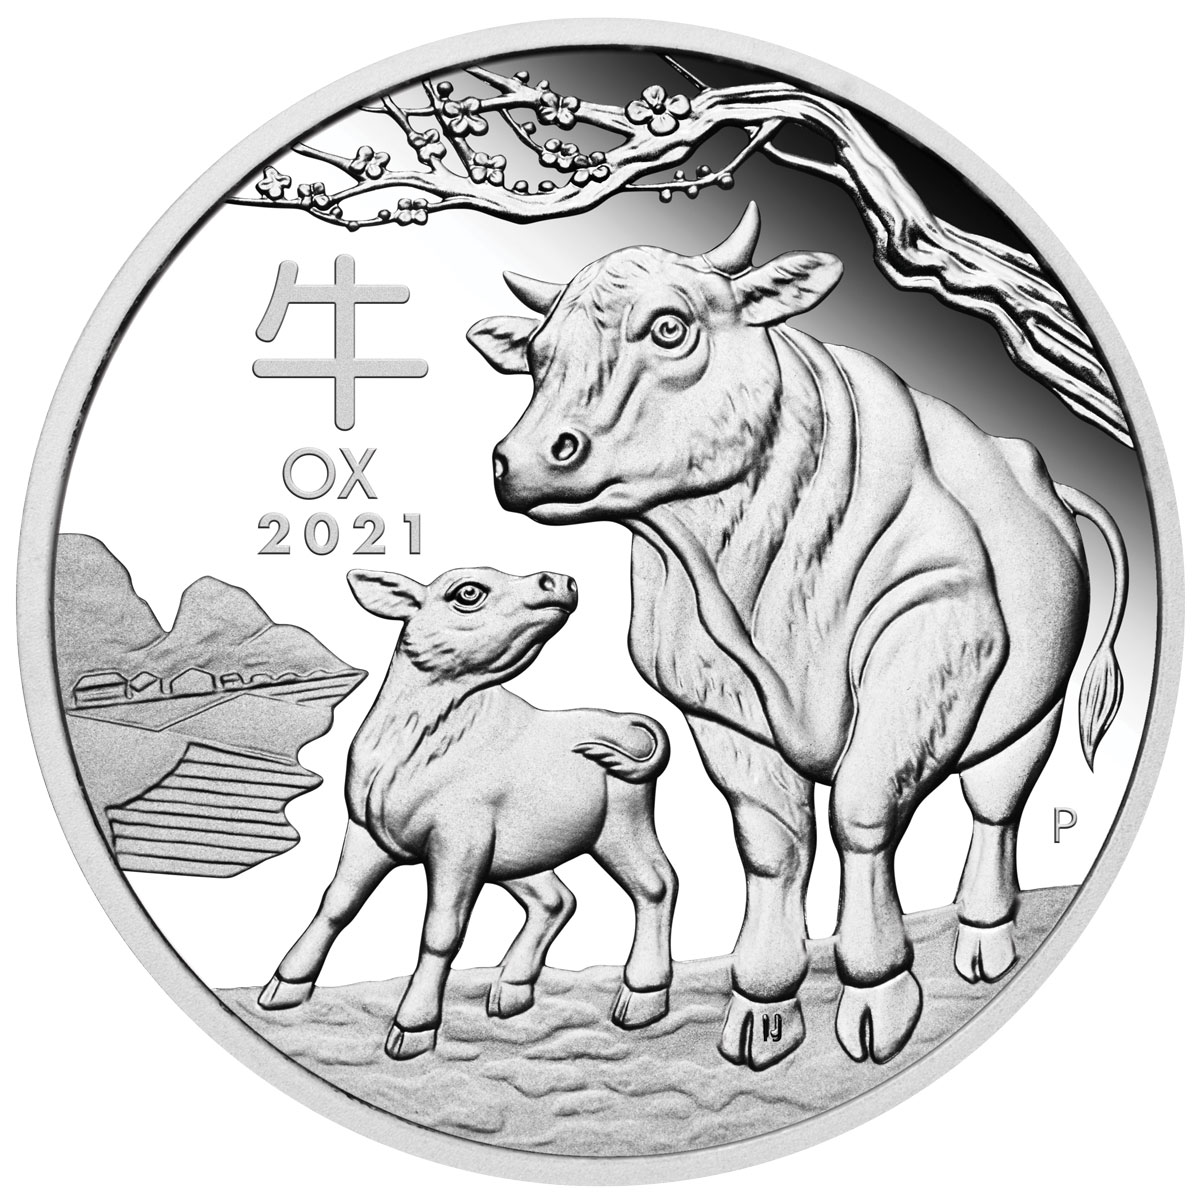 2021-P Australia 1 oz Silver Lunar Year of the Ox Proof $1 Coin GEM Proof OGP